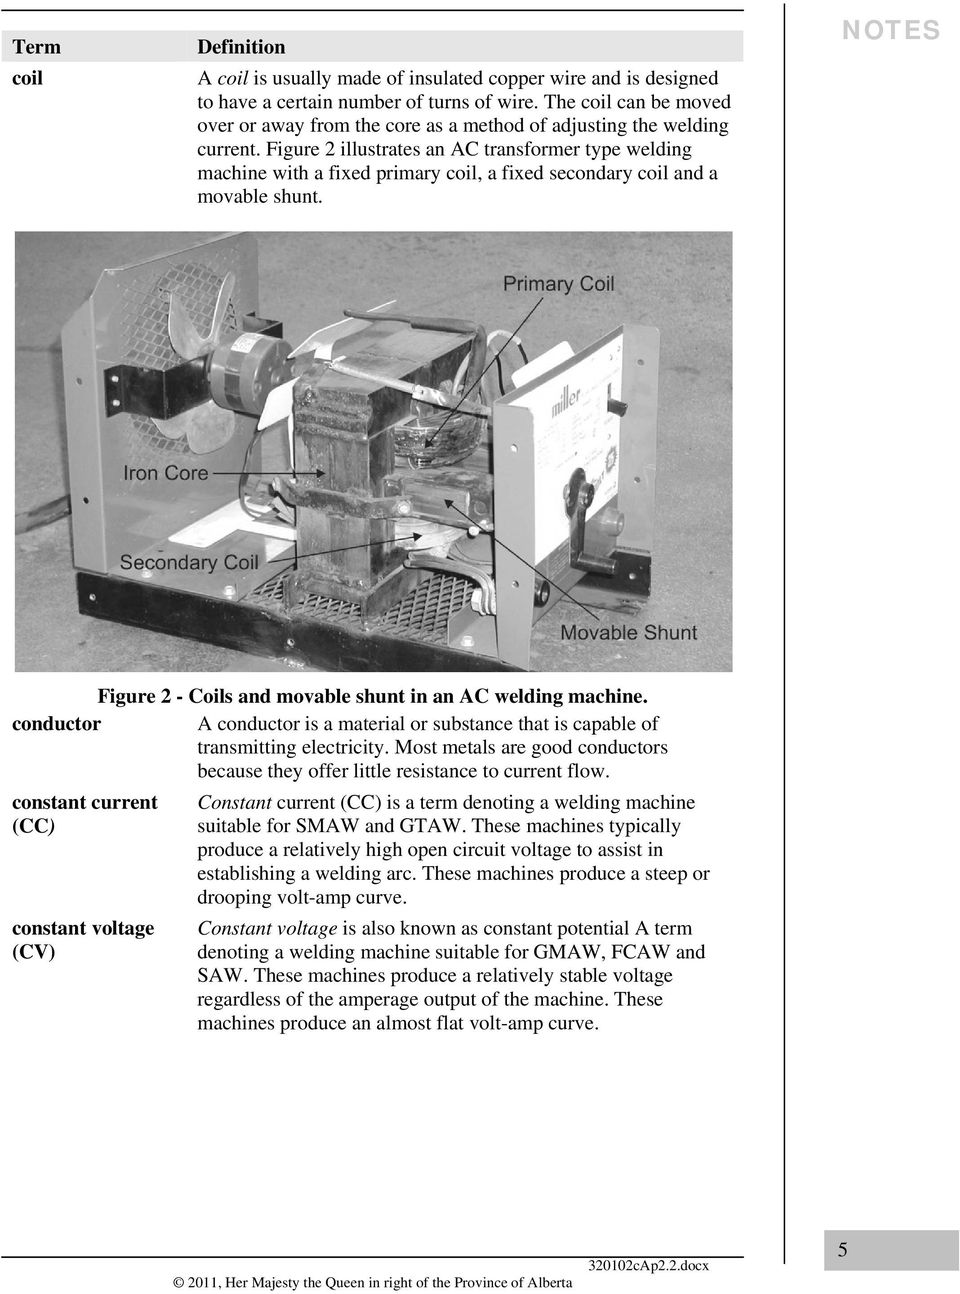 Shielded Metal Arc Welding Smaw Part A Pdf Ground Connection For Resistance Machine Wiring Schematic Figure 2 Illustrates An Ac Transformer Type With Fixed Primary Coil